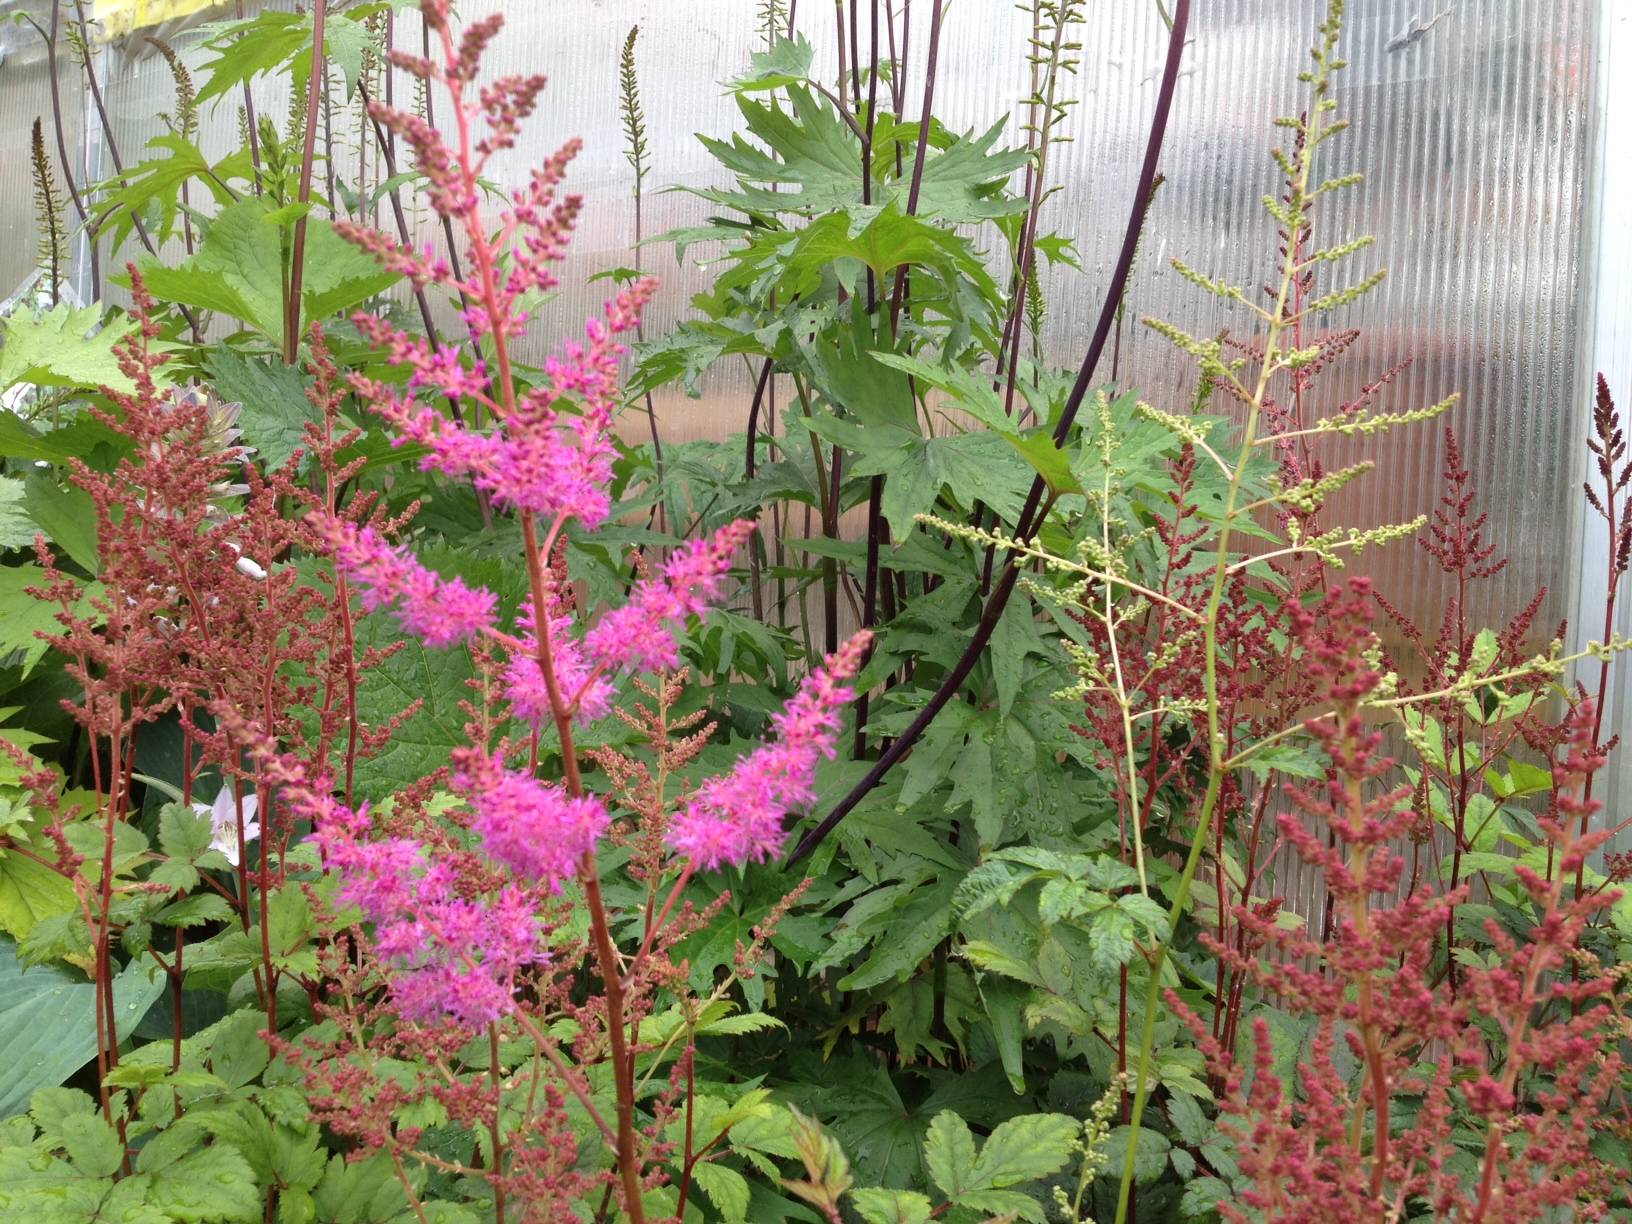 Astilbe and Ligularia